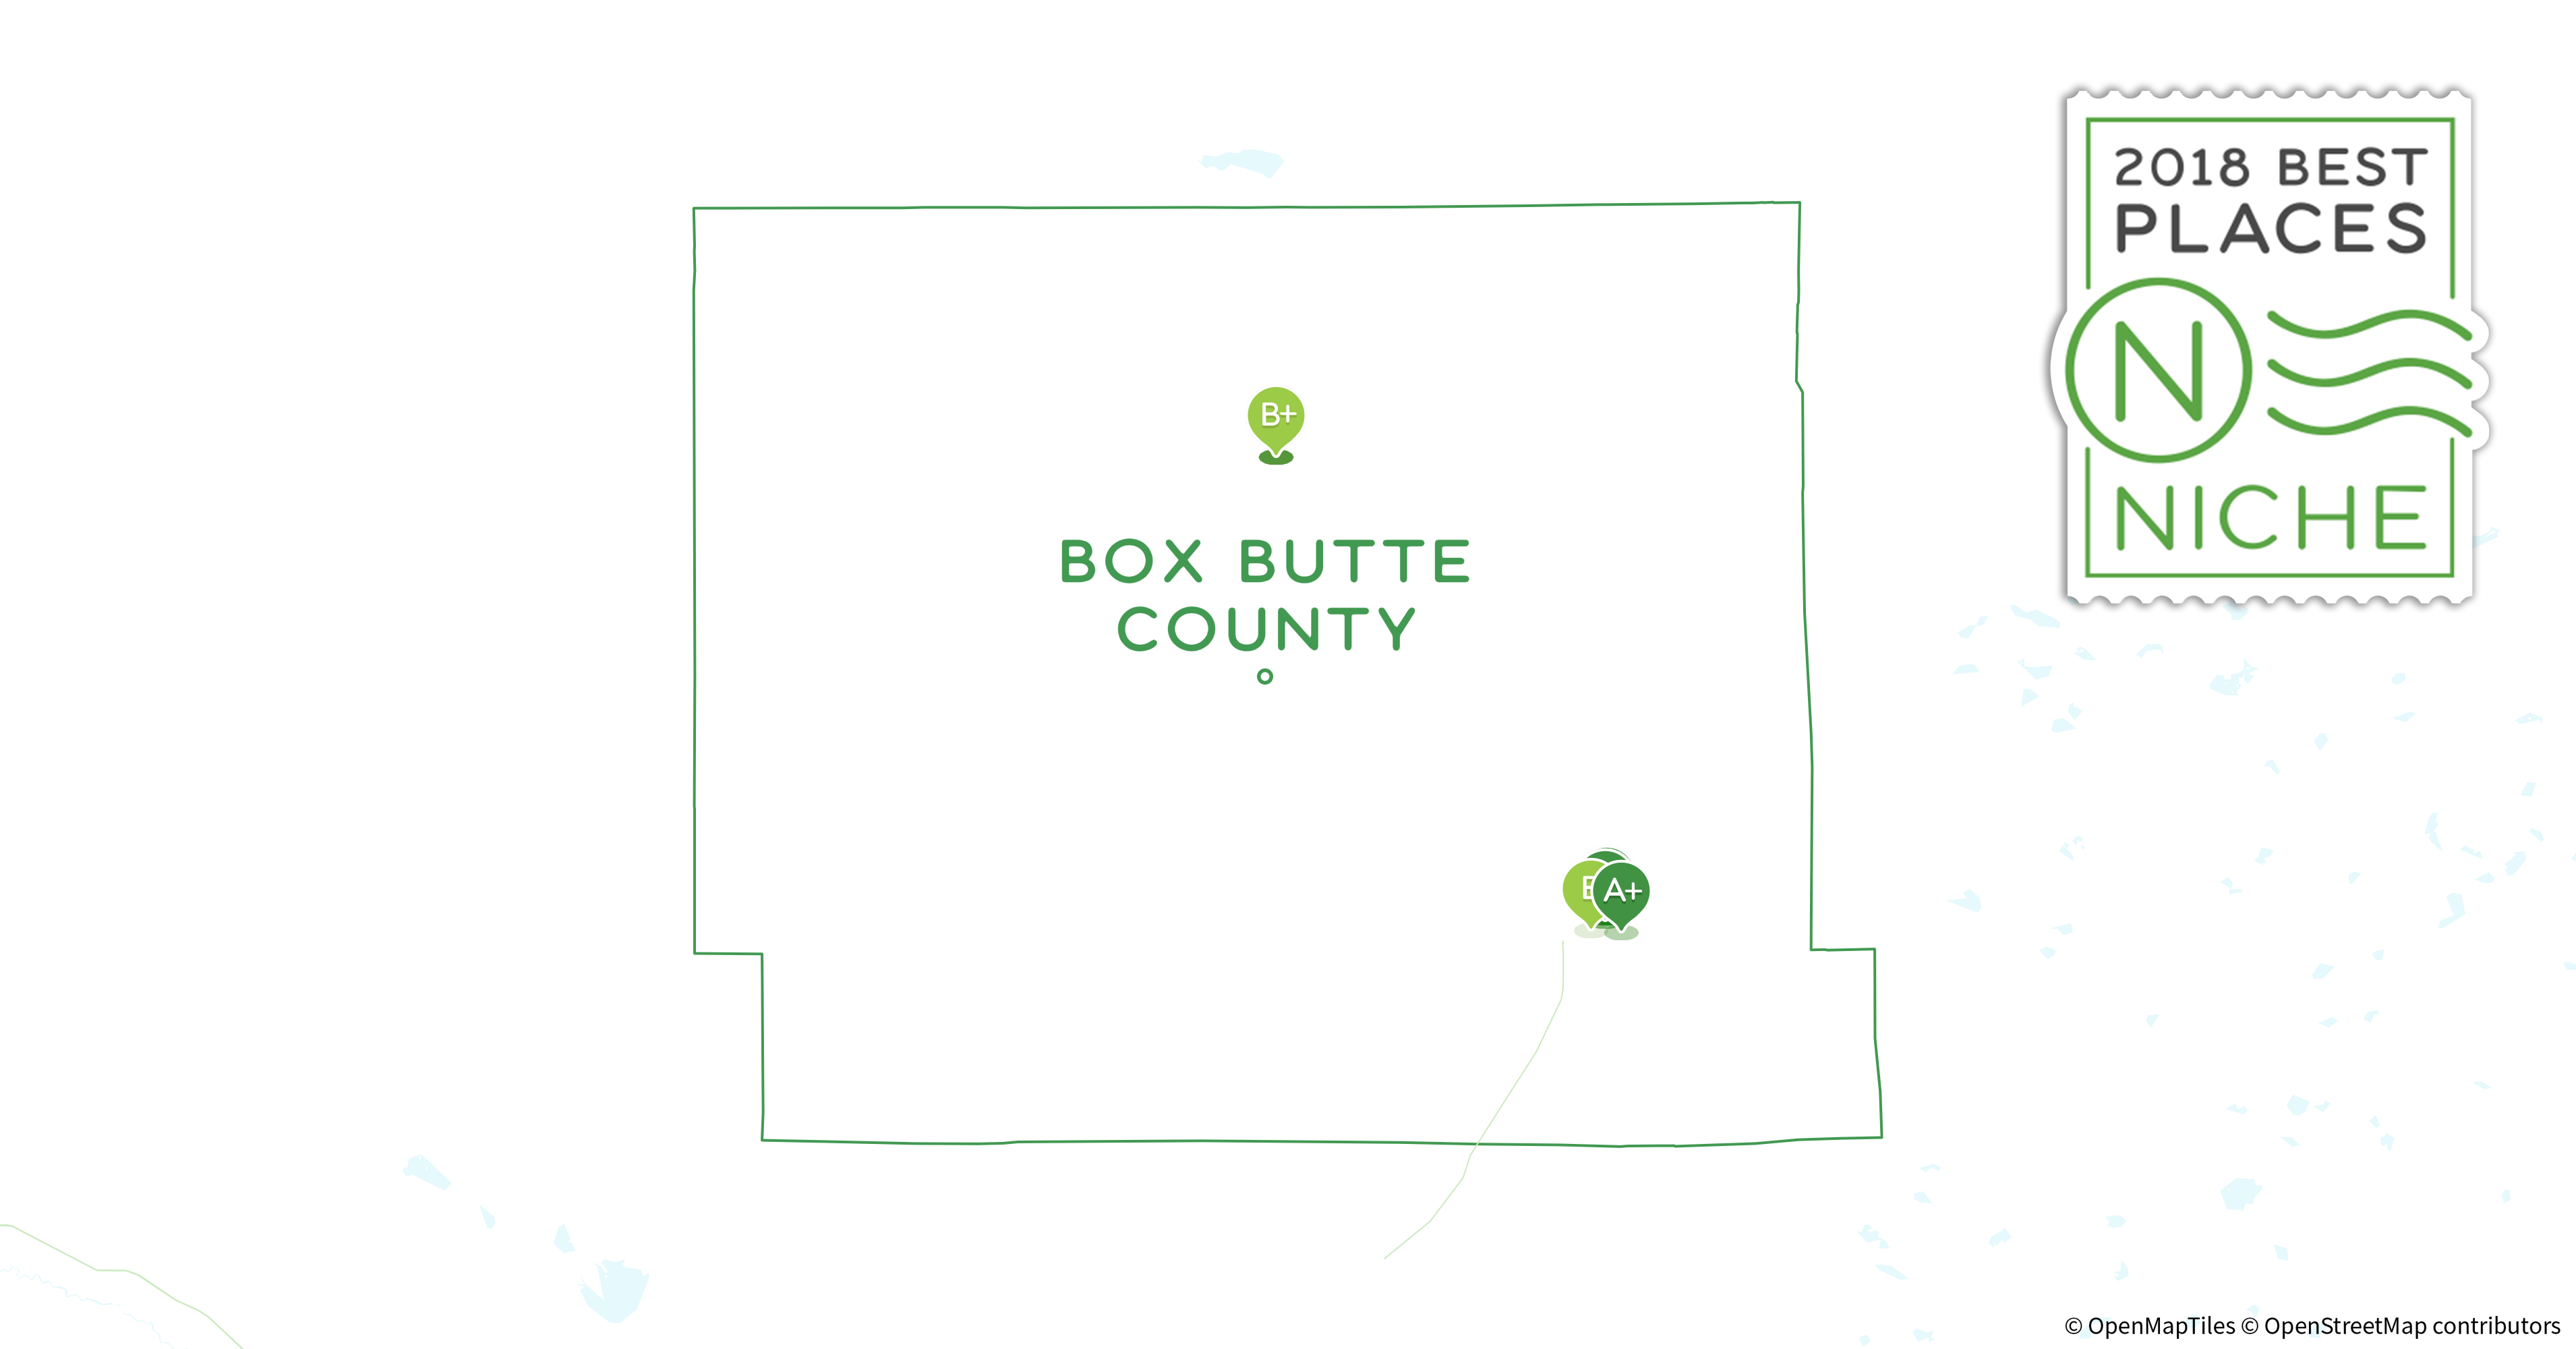 jewish singles in box butte county Alliance is a city in box butte county, in the northwestern part of the state of nebraska, in the great plains region of the united states its population was 8,491 at the 2010 census it is the county seat of box butte county.